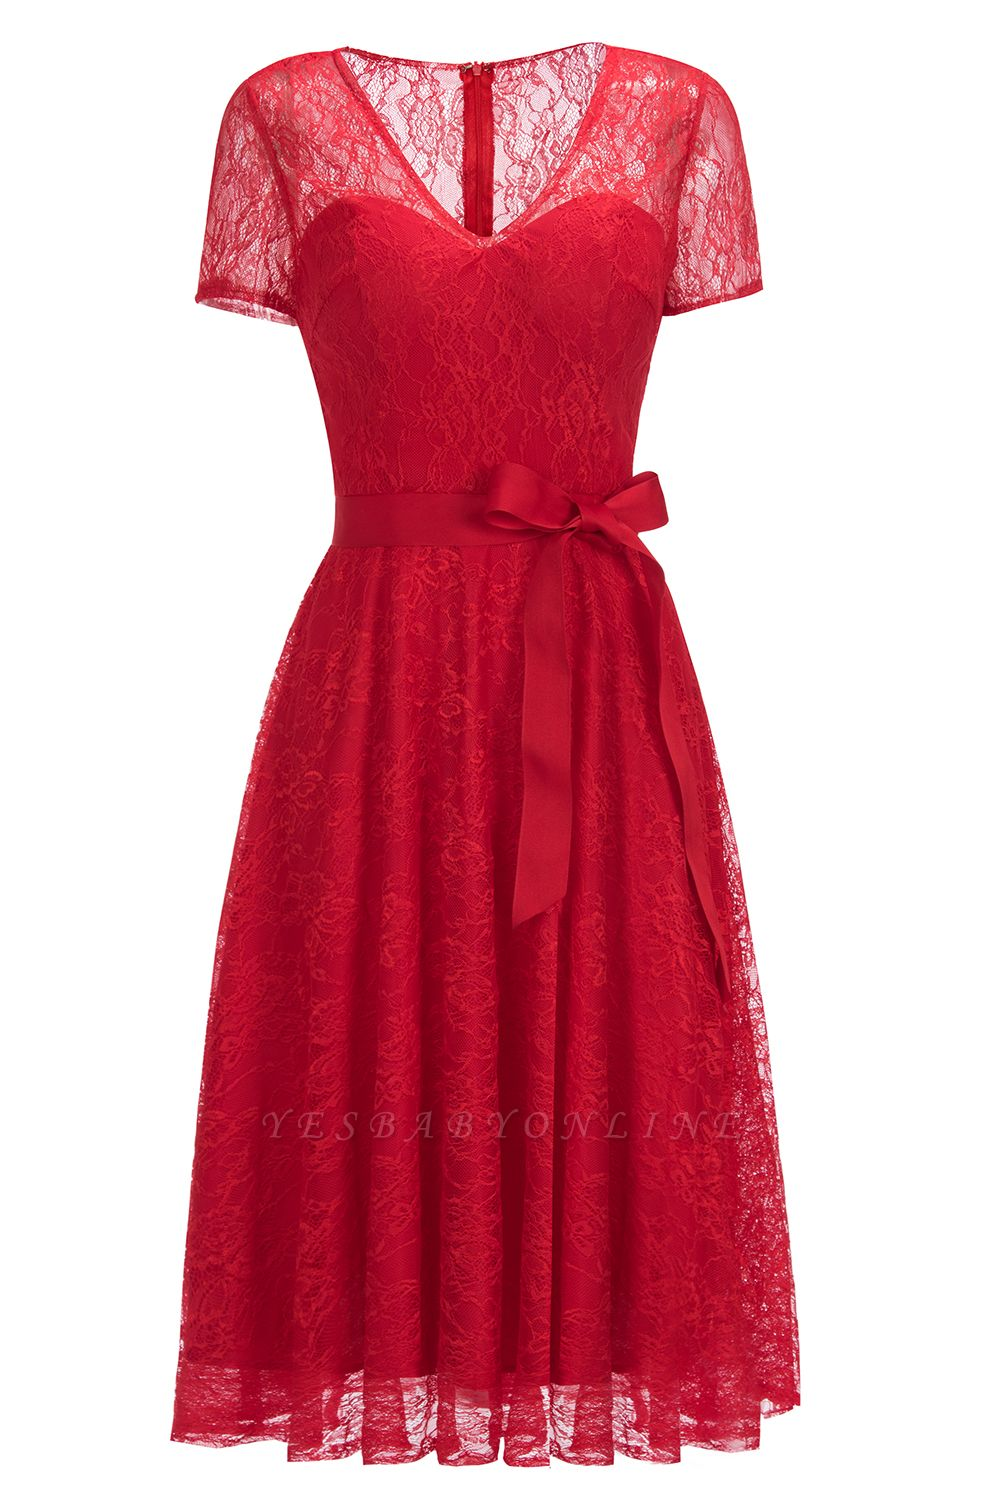 Cheap V-neck Short Sleeves Lace Dress with Bow Sash in Stock